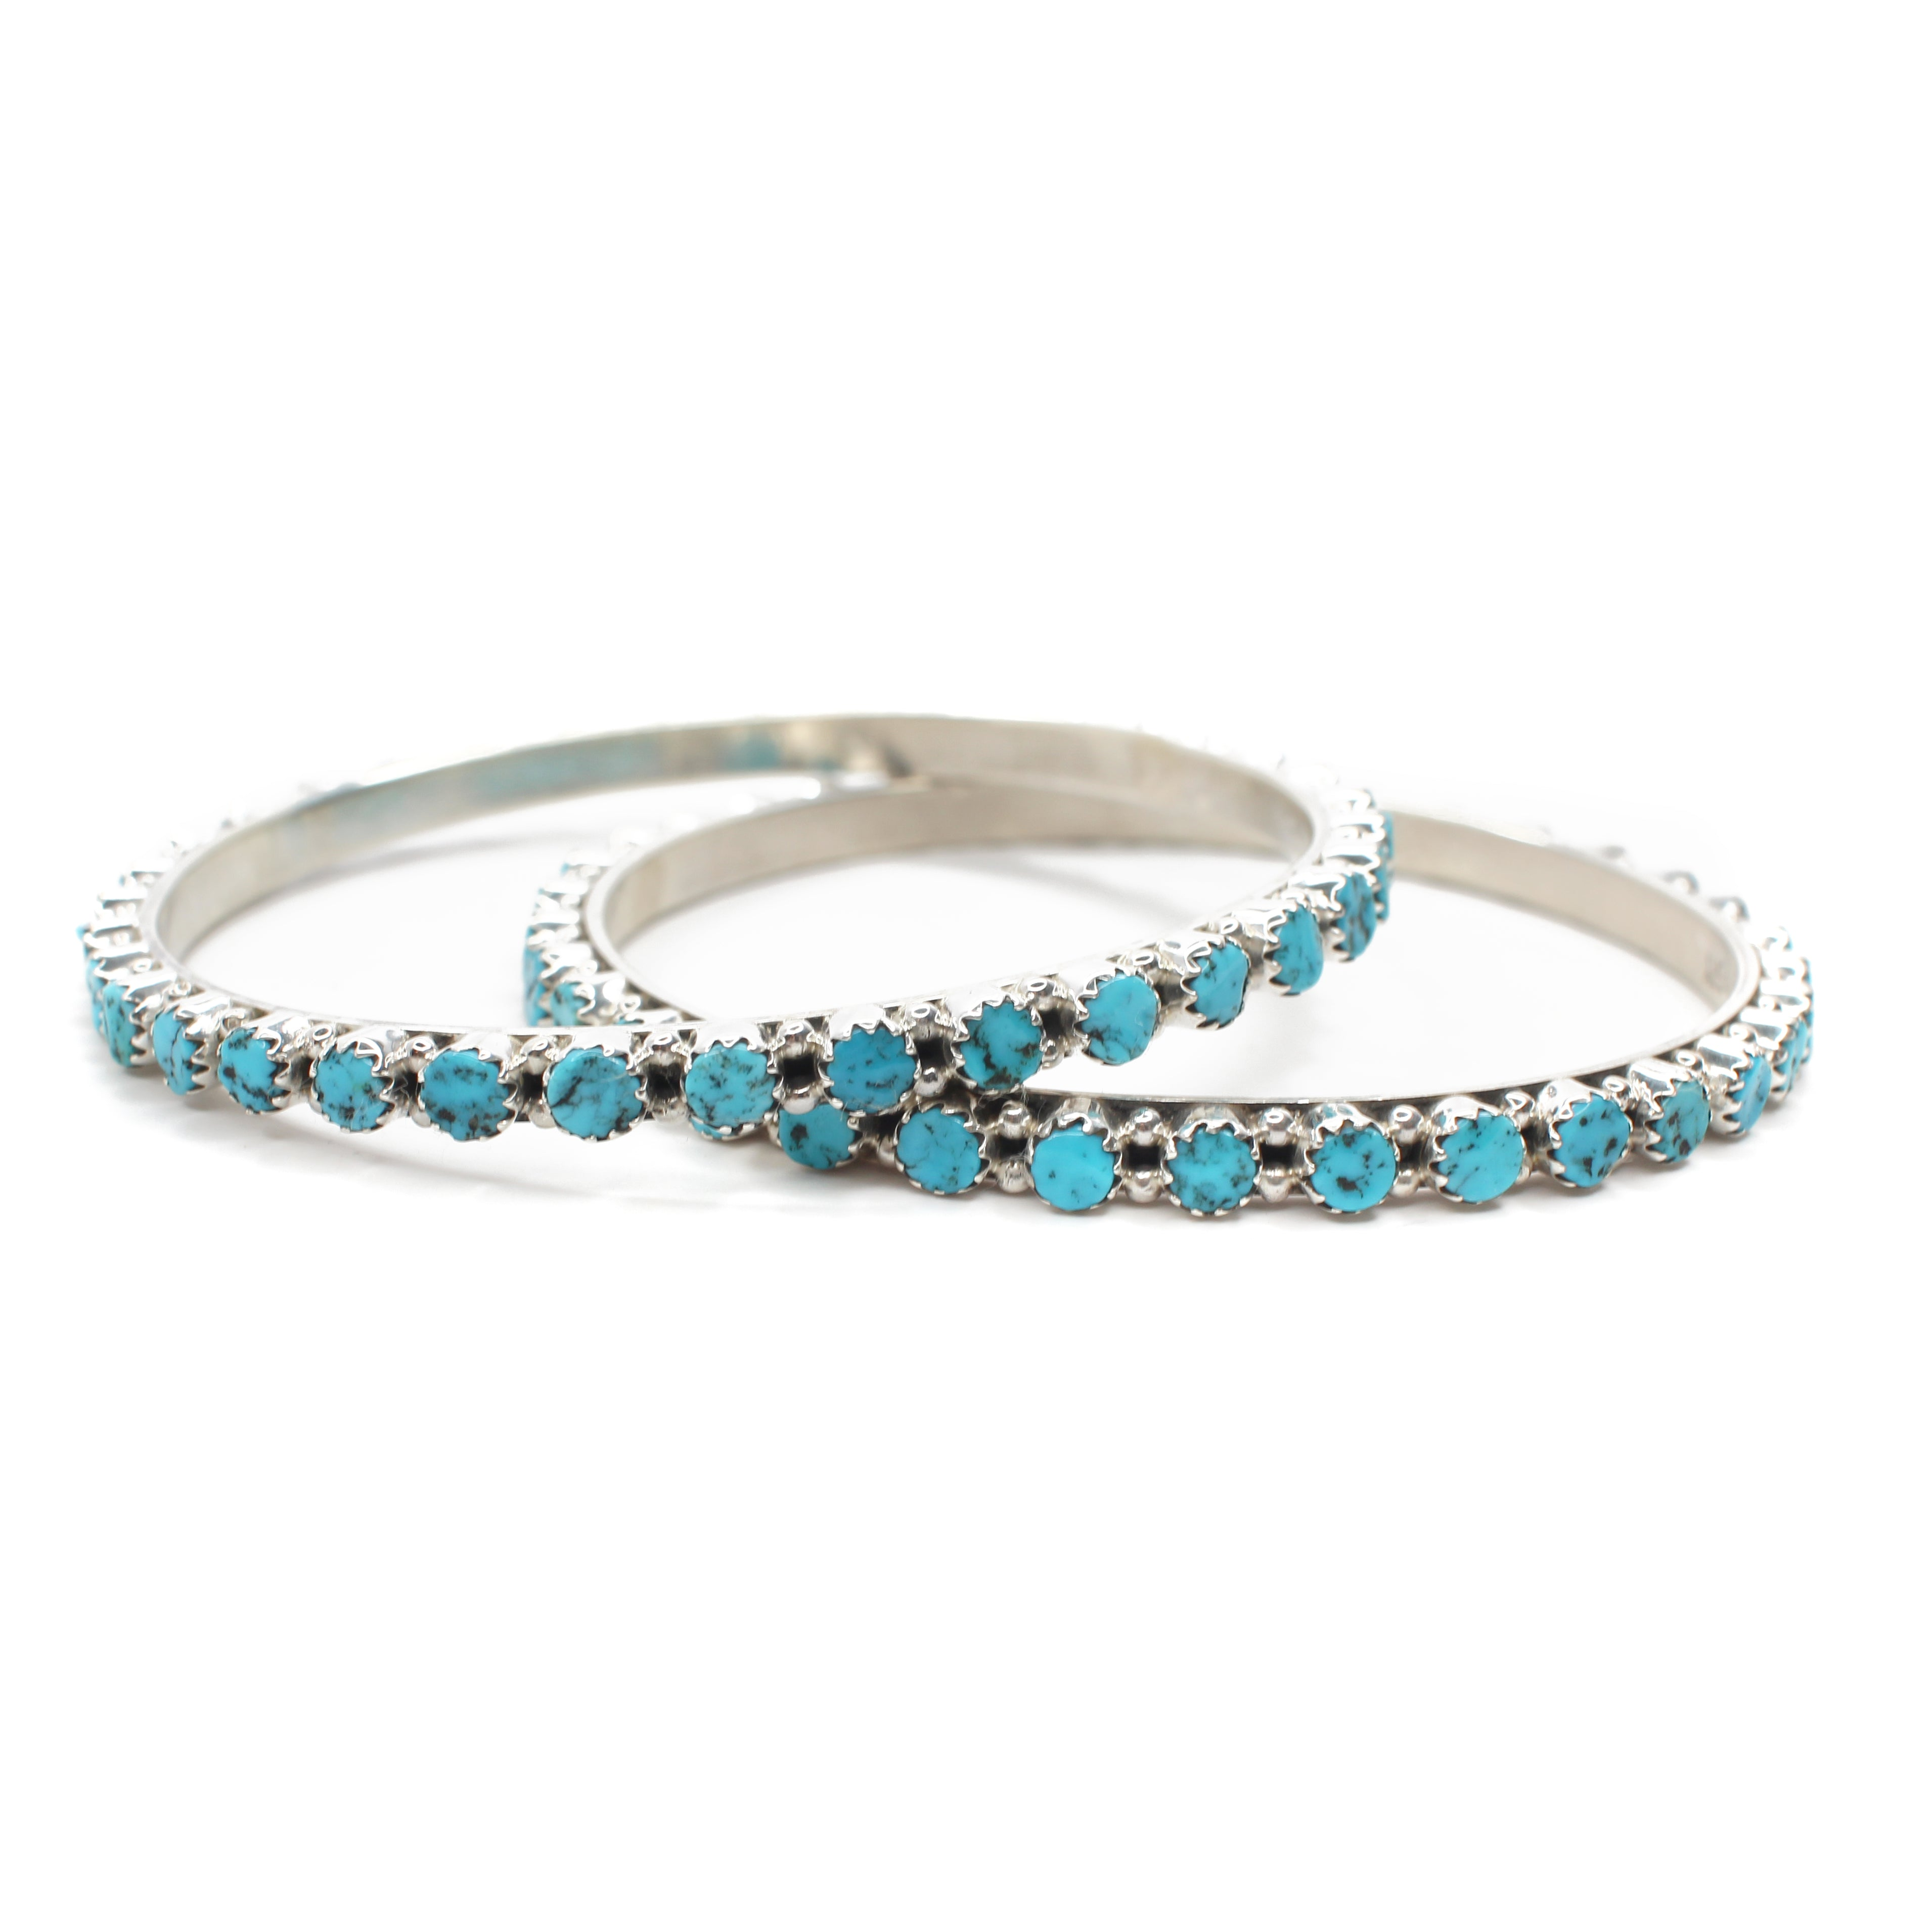 "The Lindell Bangle (7 1/4"")"